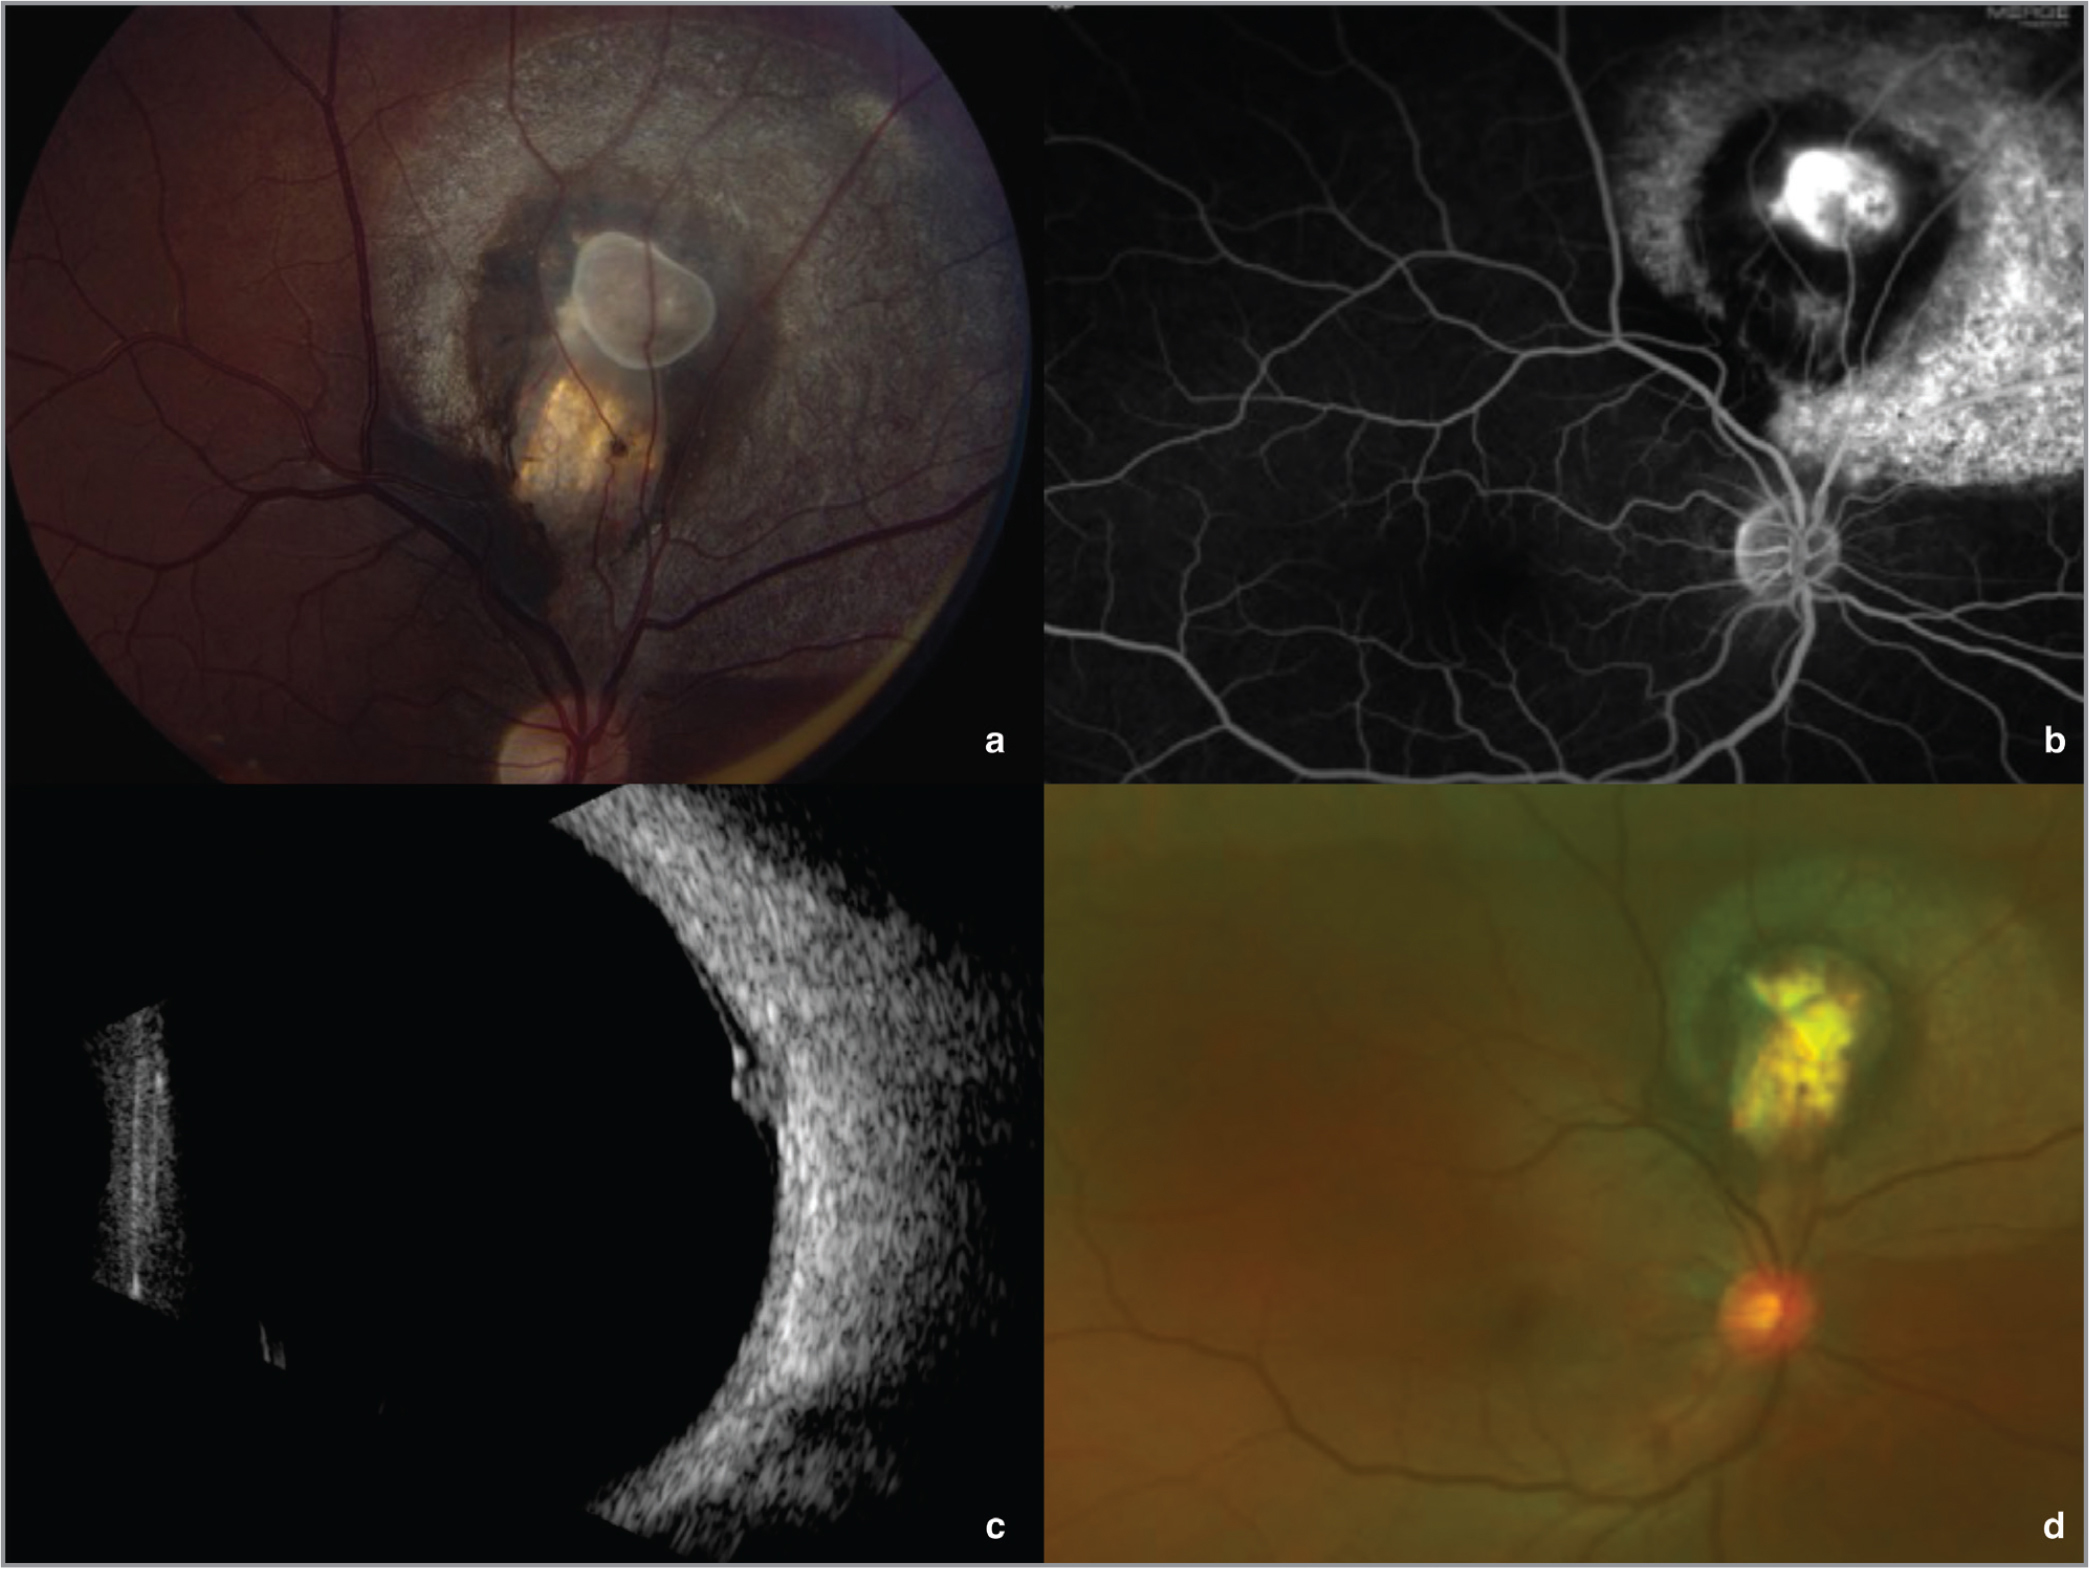 (a) A subretinal cyst is seen superior to the optic nerve with adjacent subretinal fluid and circumferential retinal pigment epithelium (RPE) atrophy in the right eye without macular or optic nerve involvement. (b) Fluorescein angiography shows early phase staining of the cyst wall, late-phase pooling of fluorescein in the subretinal space, and window defects in the area of surrounding RPE atrophy. (c) An irregularly shaped lesion is seen with medium to high reflectivity with adjacent subretinal fluid on B-scan. (d) Stable retinal atrophy is seen in the area of the previous cyst with attached retina and normal macula.